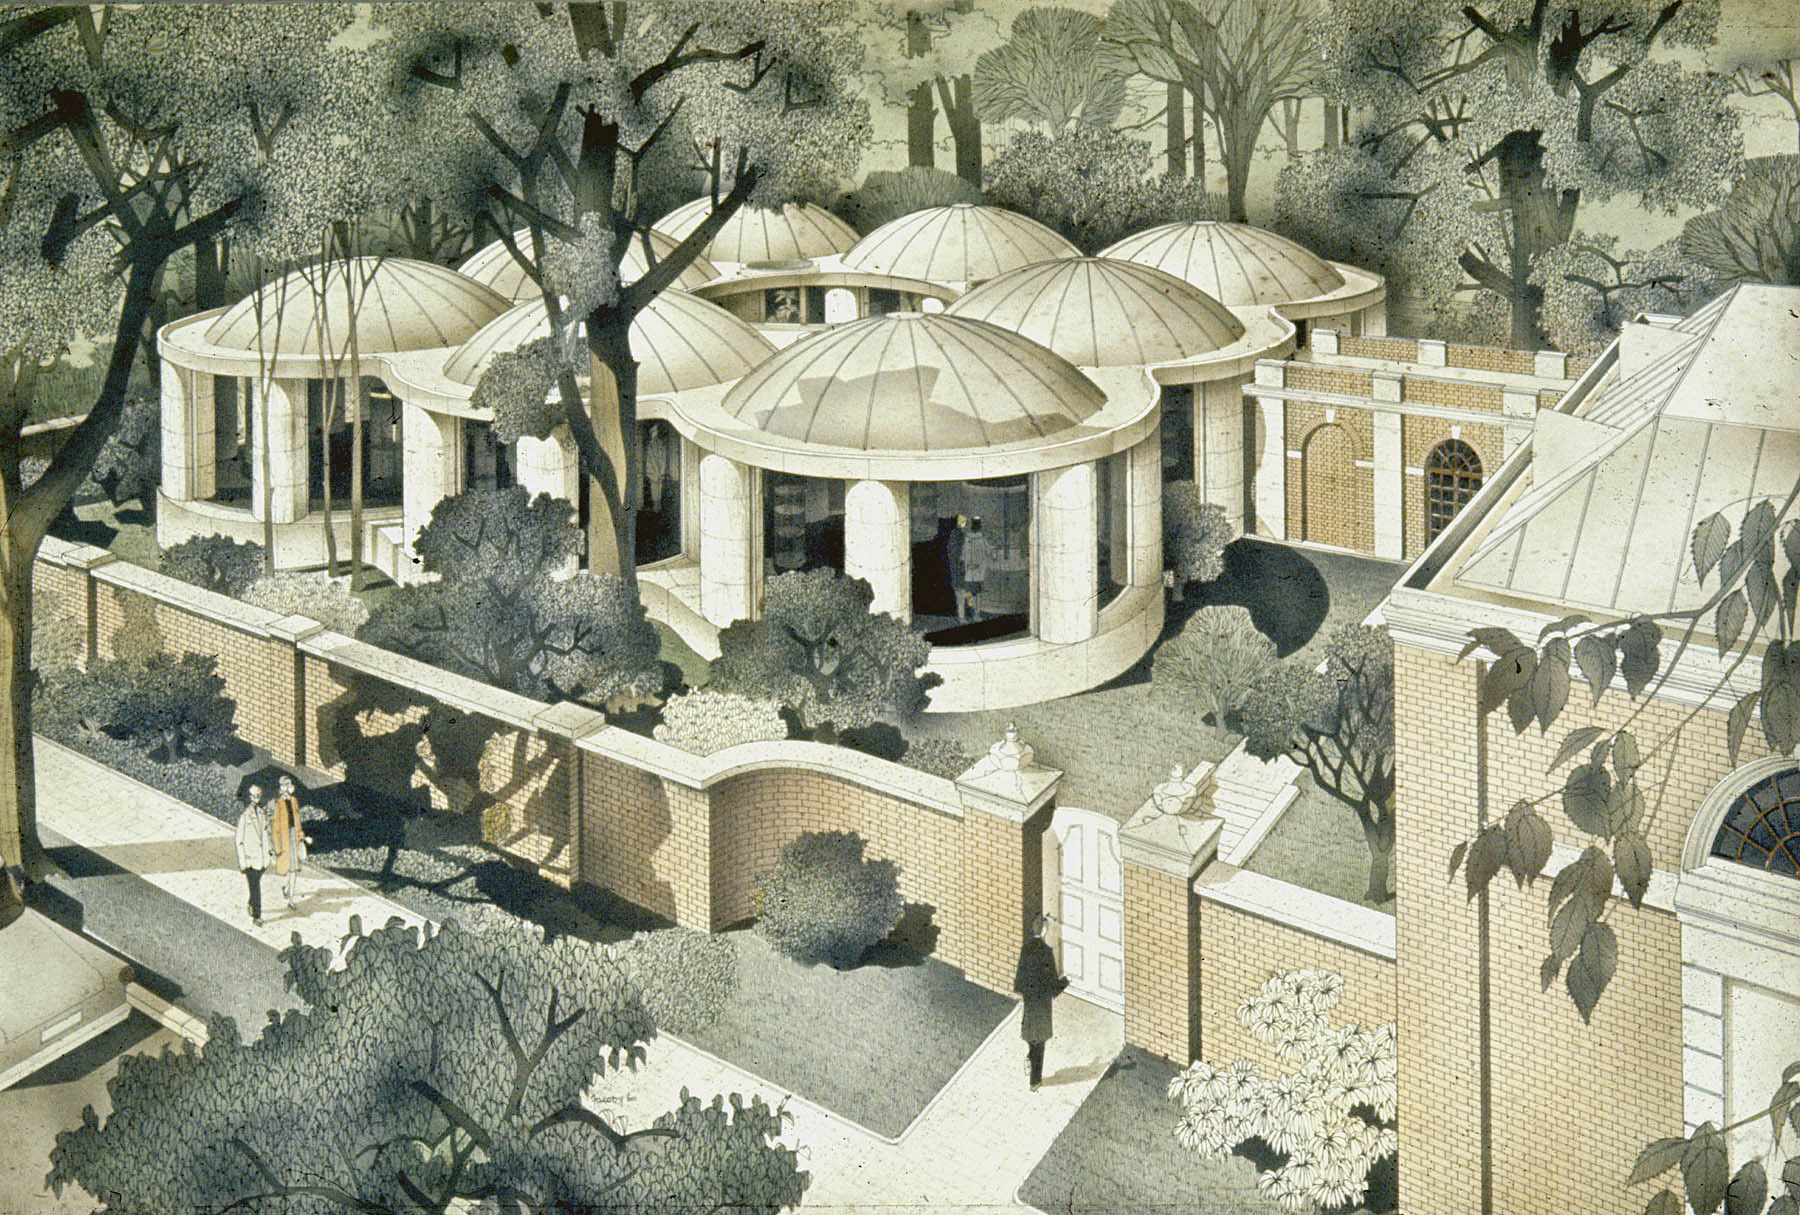 Helmut Jacoby for Philip Johnson Associates - Architects, Pre-Columbian Pavilion, Watercolor, 1960